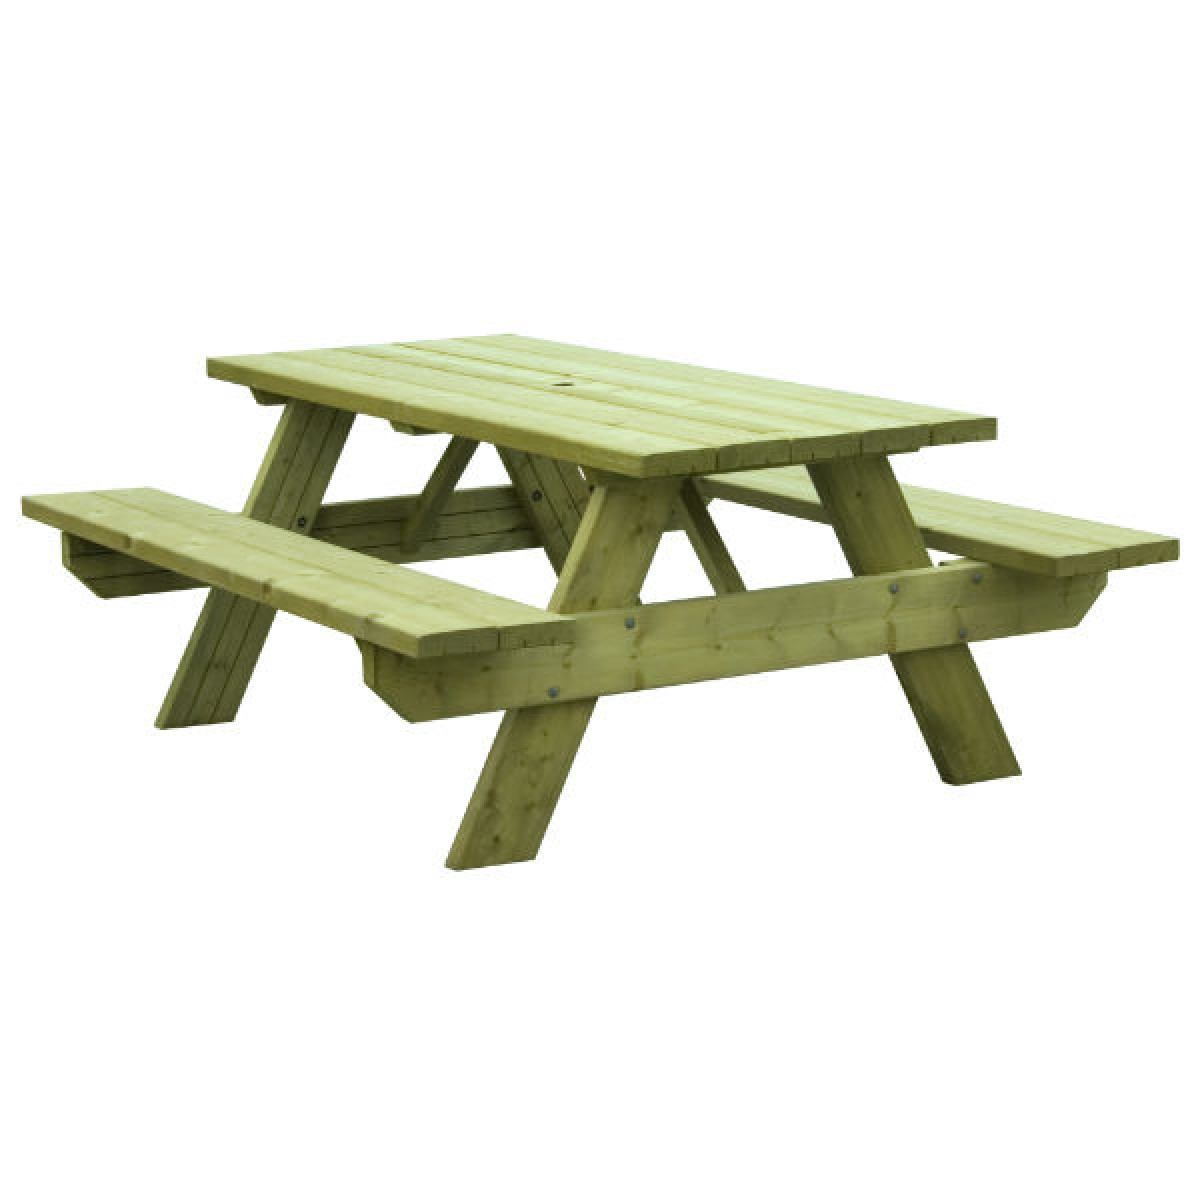 Woodford Heavy Duty Oblong 6 Seater Picnic Table